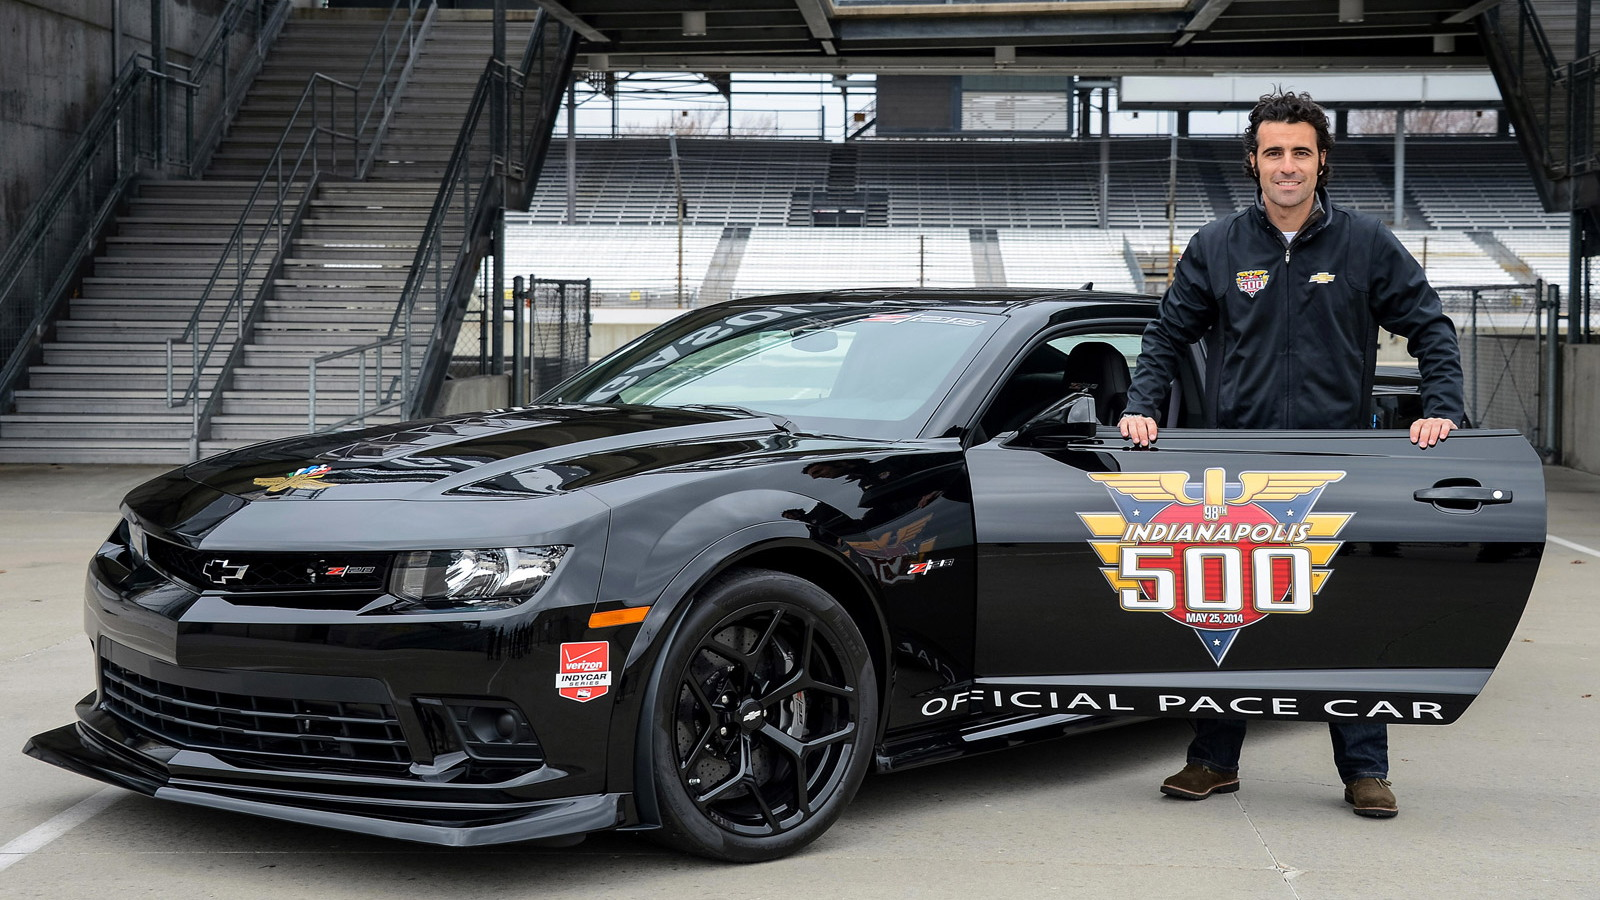 Dario Franchitti and the 2014 Chevrolet Camaro Z/28 Indy 500 pace car